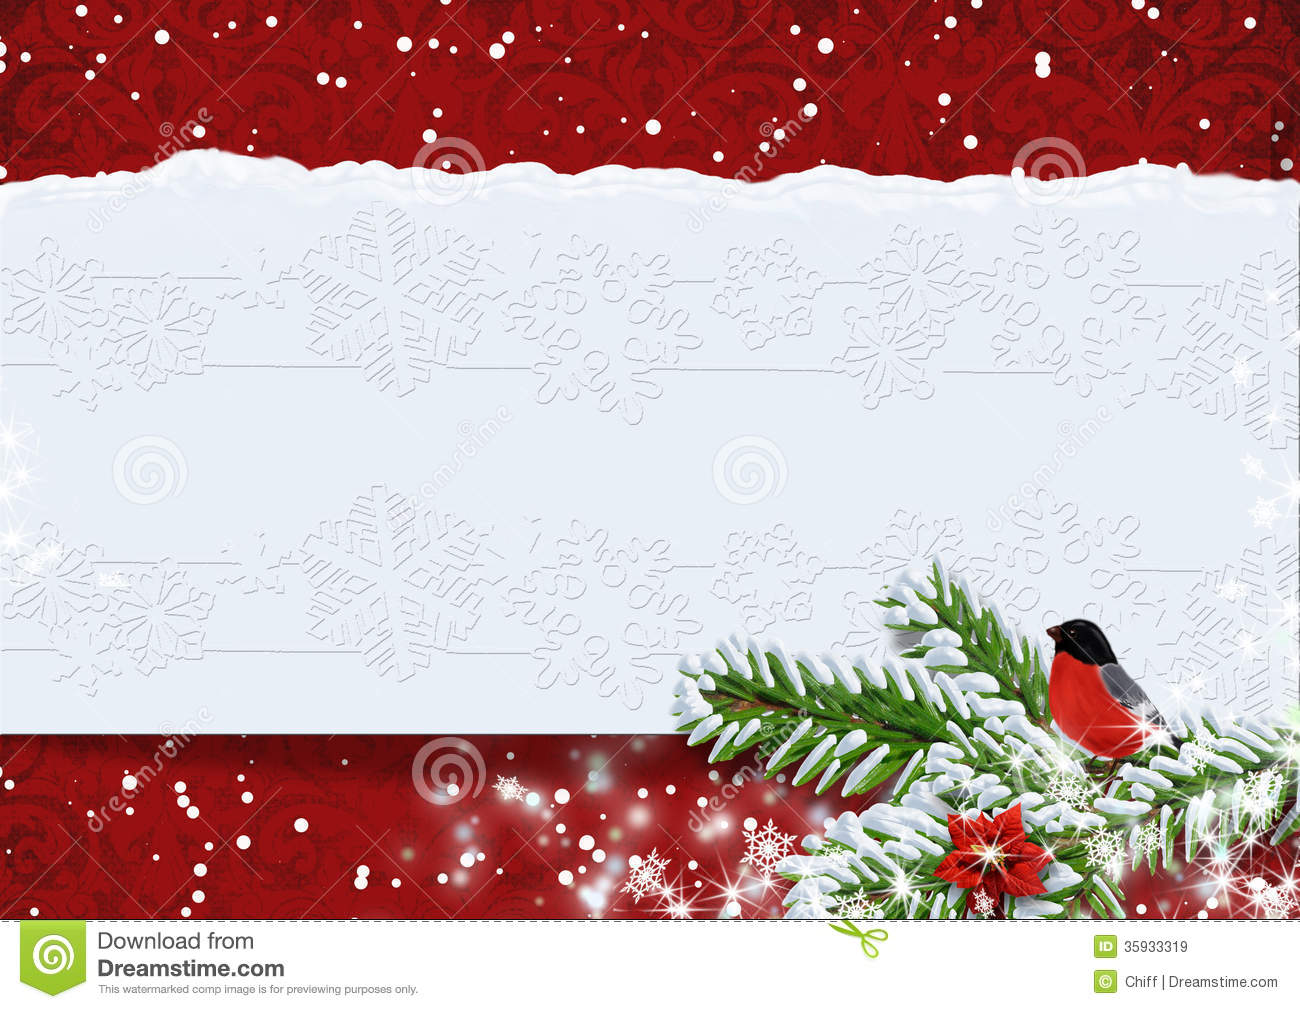 red snow christmas background - photo #49